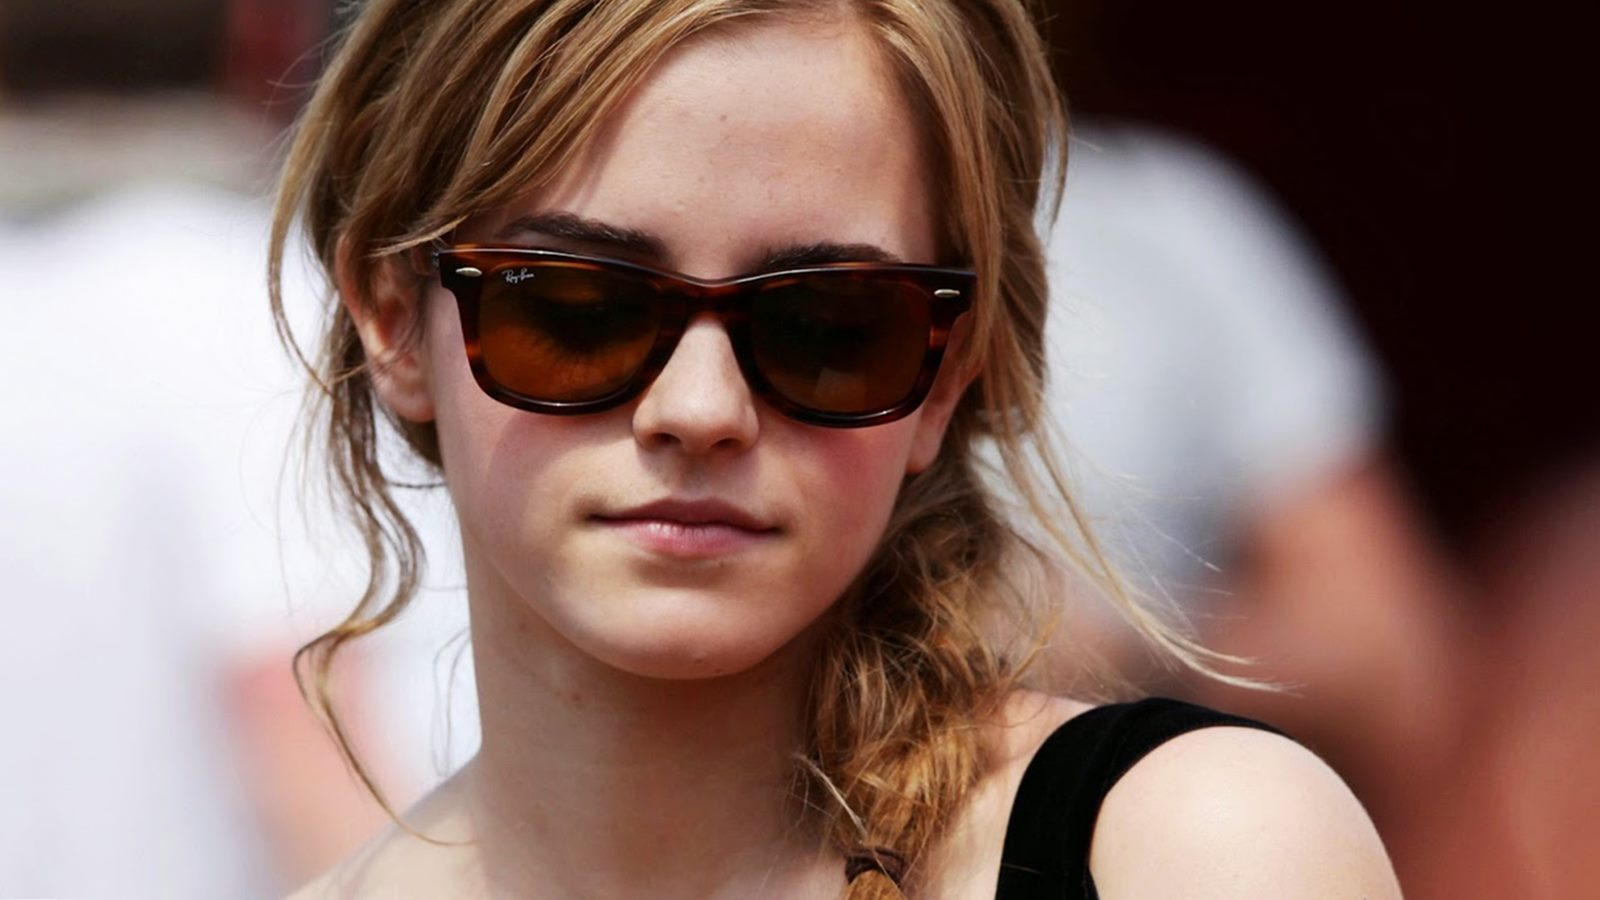 Cute Emma Watson Laptop Download Stylish Look With Black Sun Glass Background Pictures Hd Free